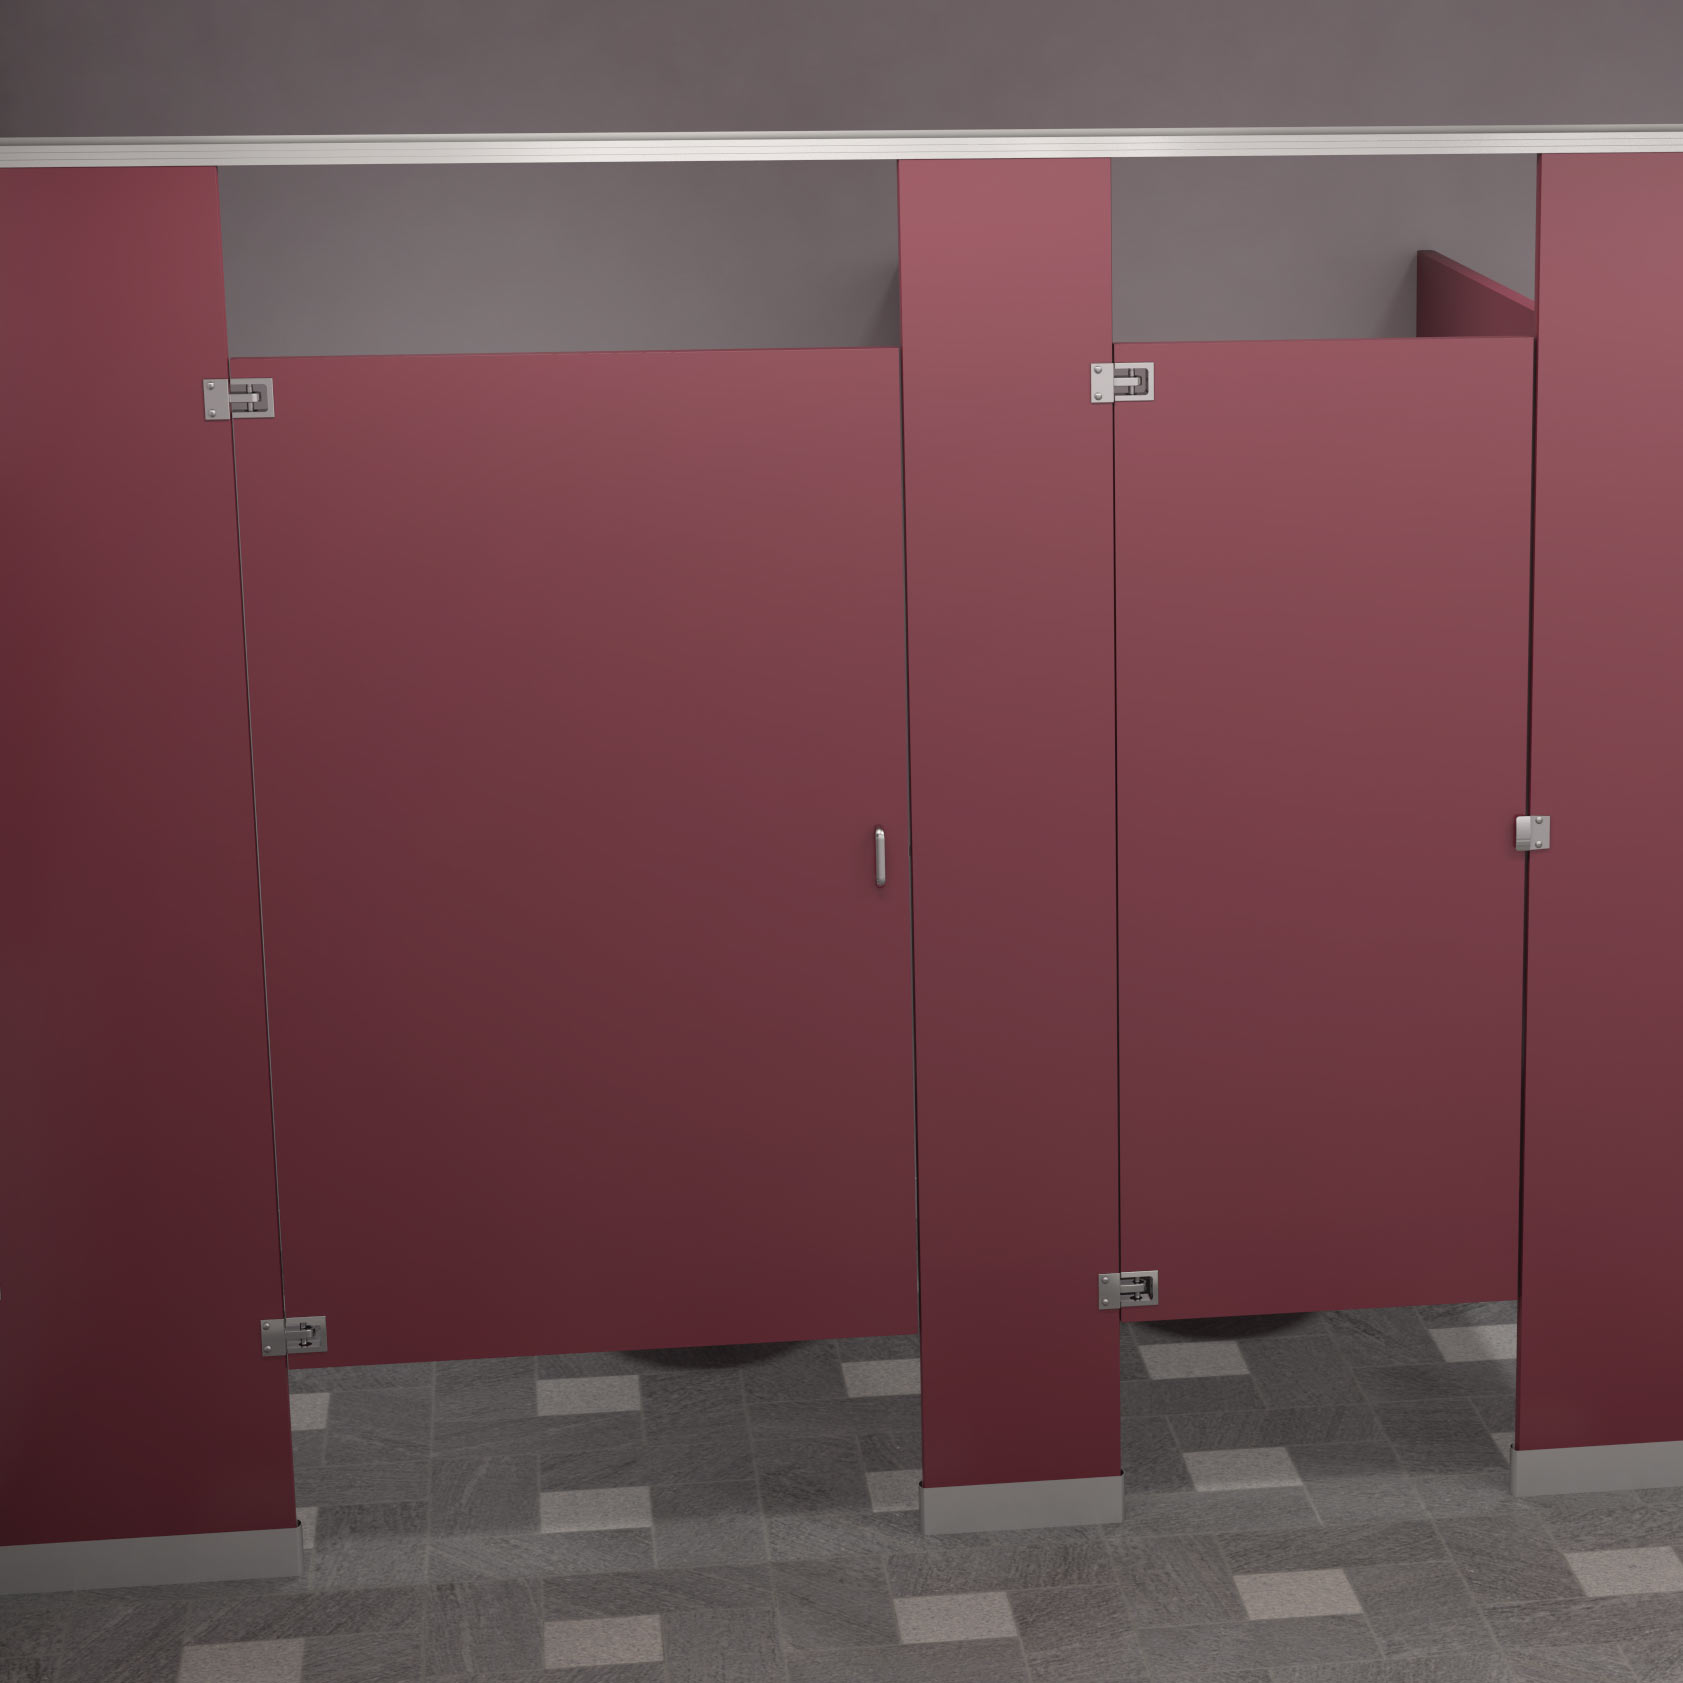 Bathroom Partitions Materials privacy compartment materials for public restrooms |